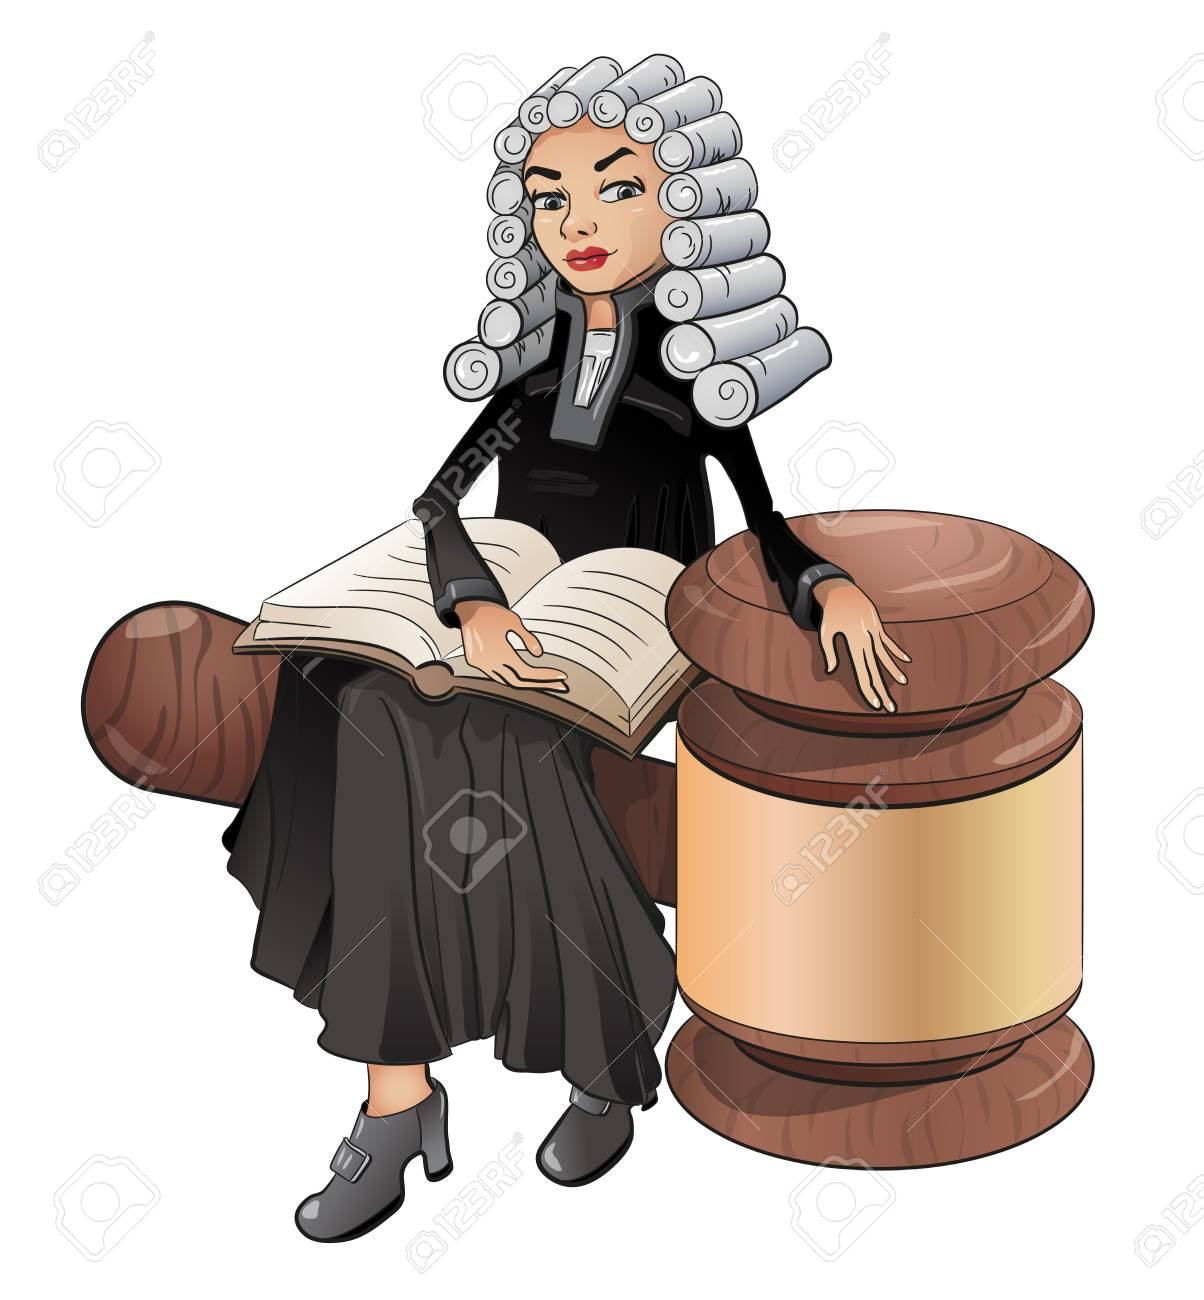 A judge is a female lawyer in a wig with a book and a hammer,...